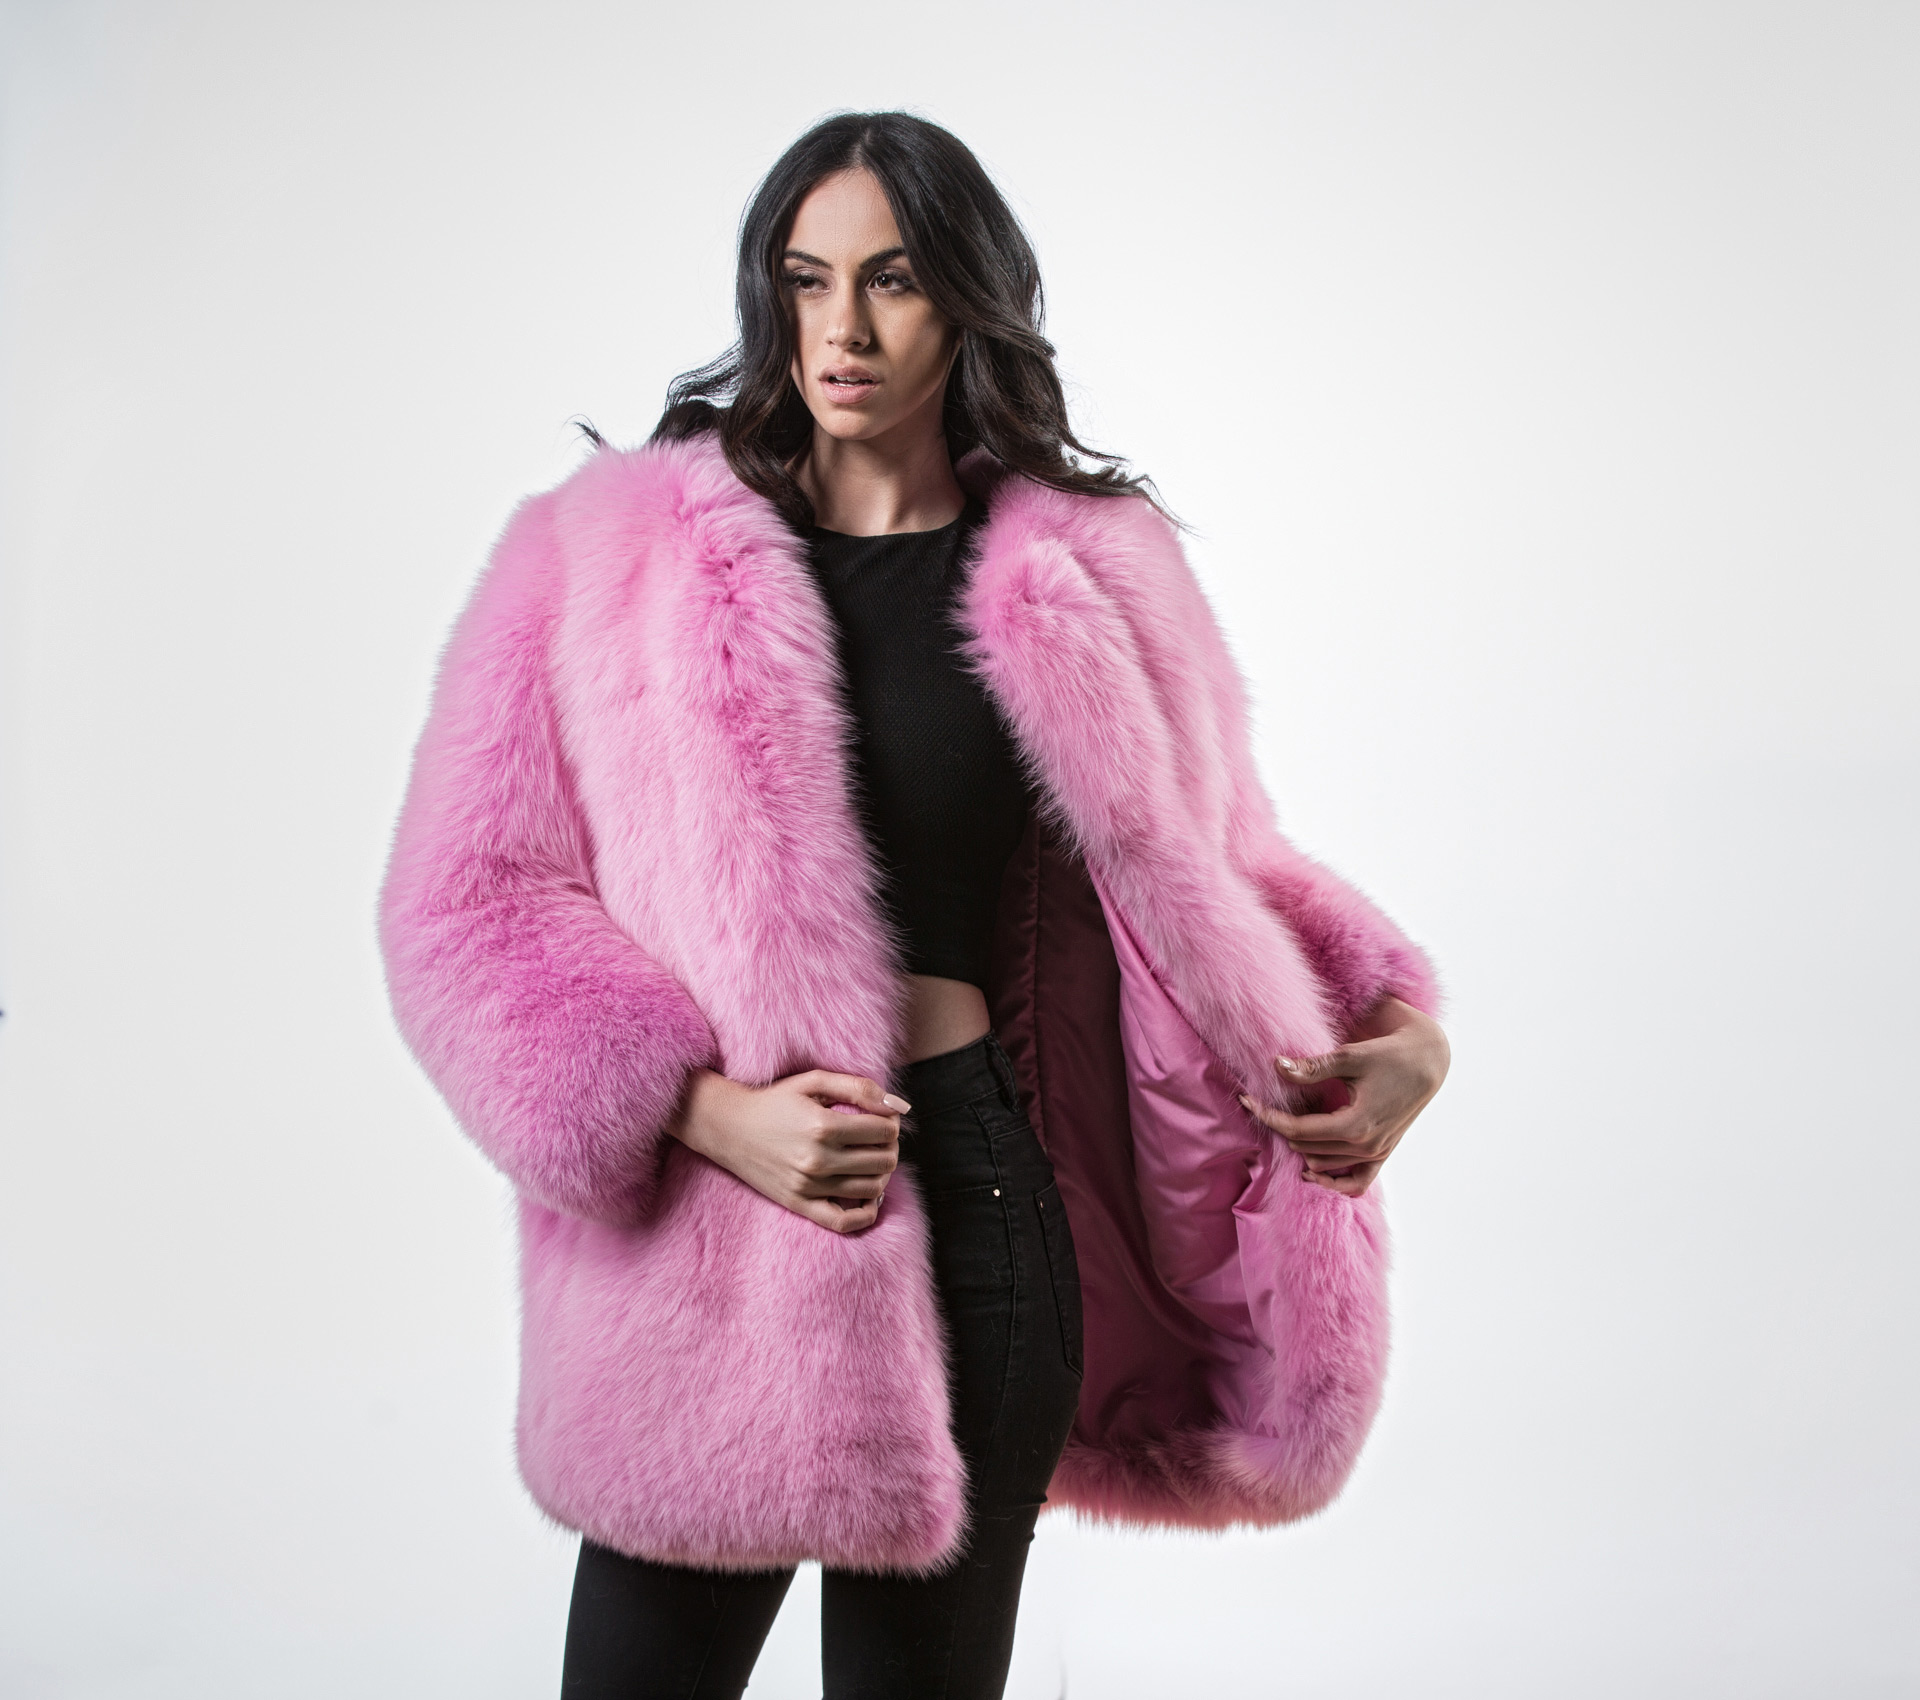 e20fb2e0f Colored Faux Fur Coat Na Kd Com